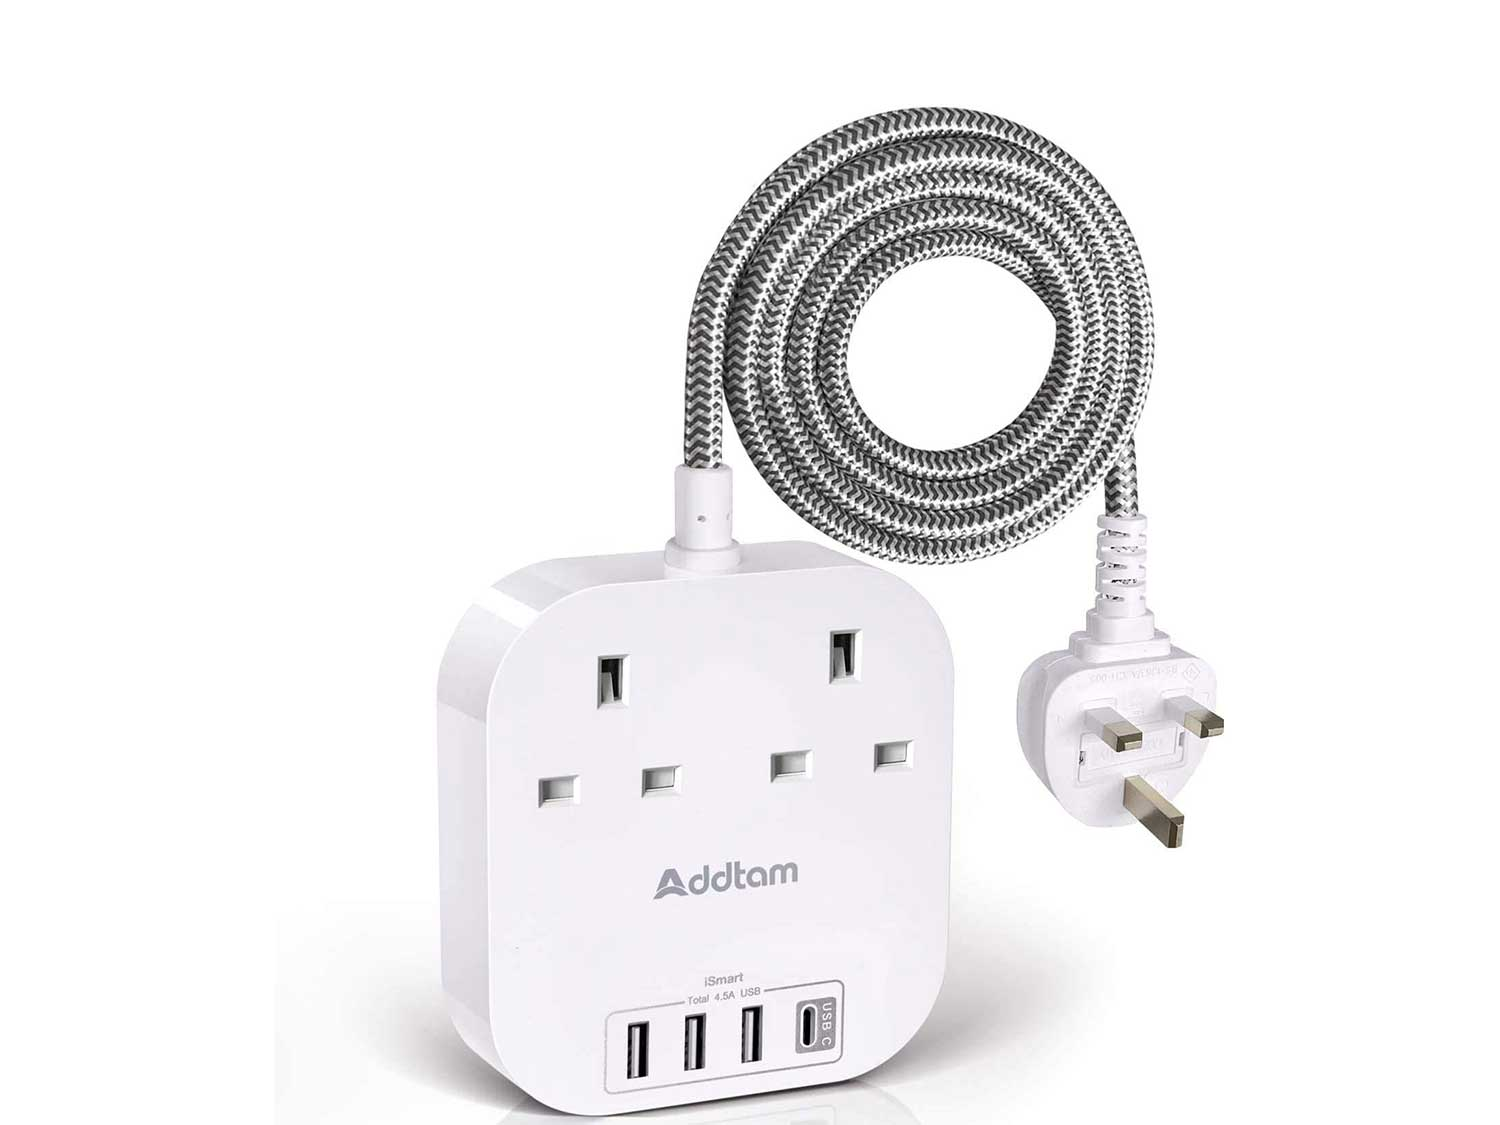 Extension Lead with USB C Ports, Power Strips with 2 Way Outlets 4 USB(4.5A, 1 Type C and 3 USB-A Port) Surge Protection Plug Extension Socket with 1.8 Meter Braided Extension cord for Home Office